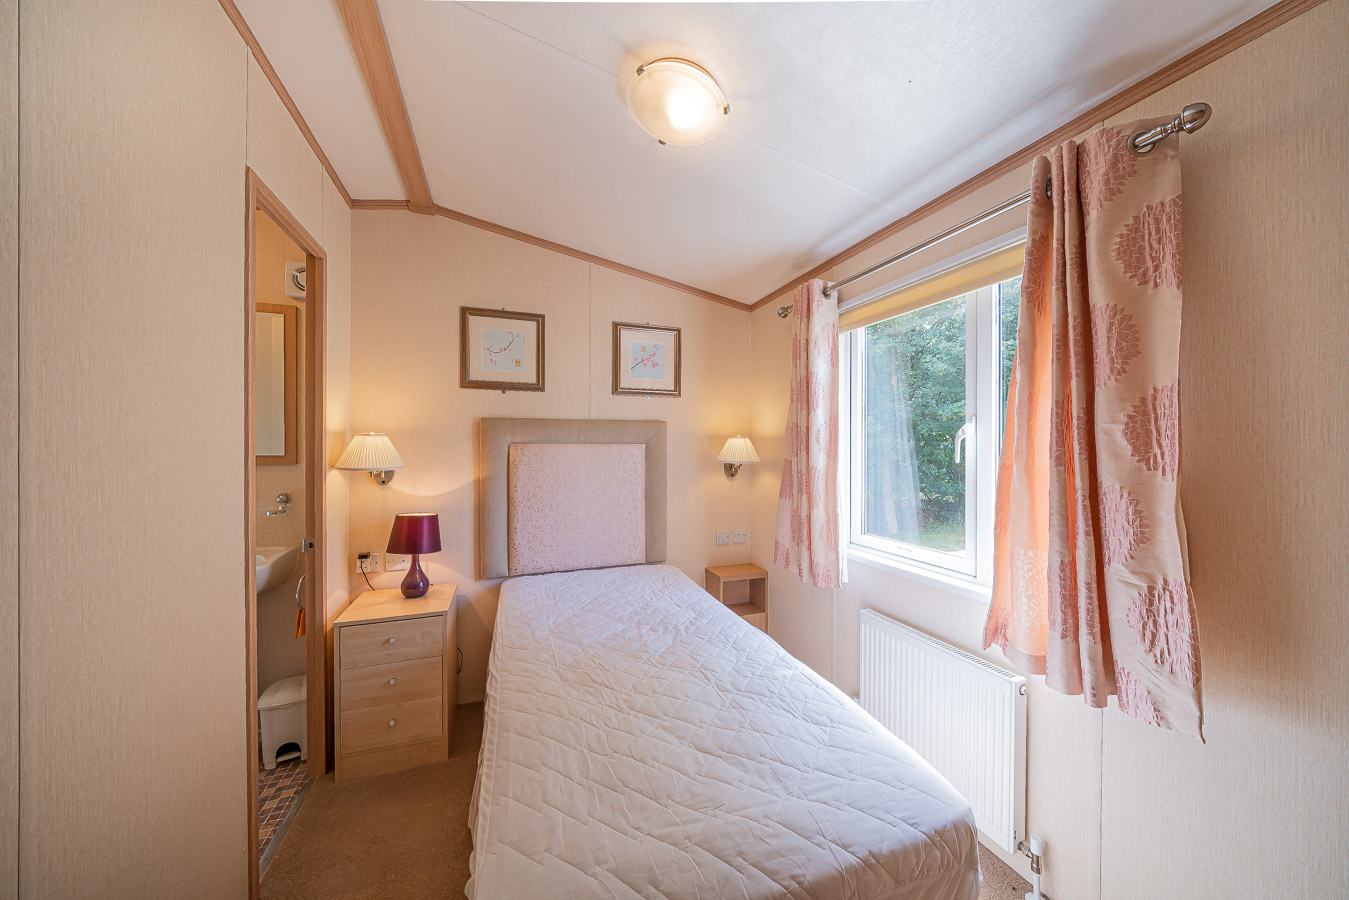 Monkton-Wyld-Static-Mobile-Holiday-Home-Sale-Plot-8-Charmouth-Lyme-Regis-West-Dorset-8